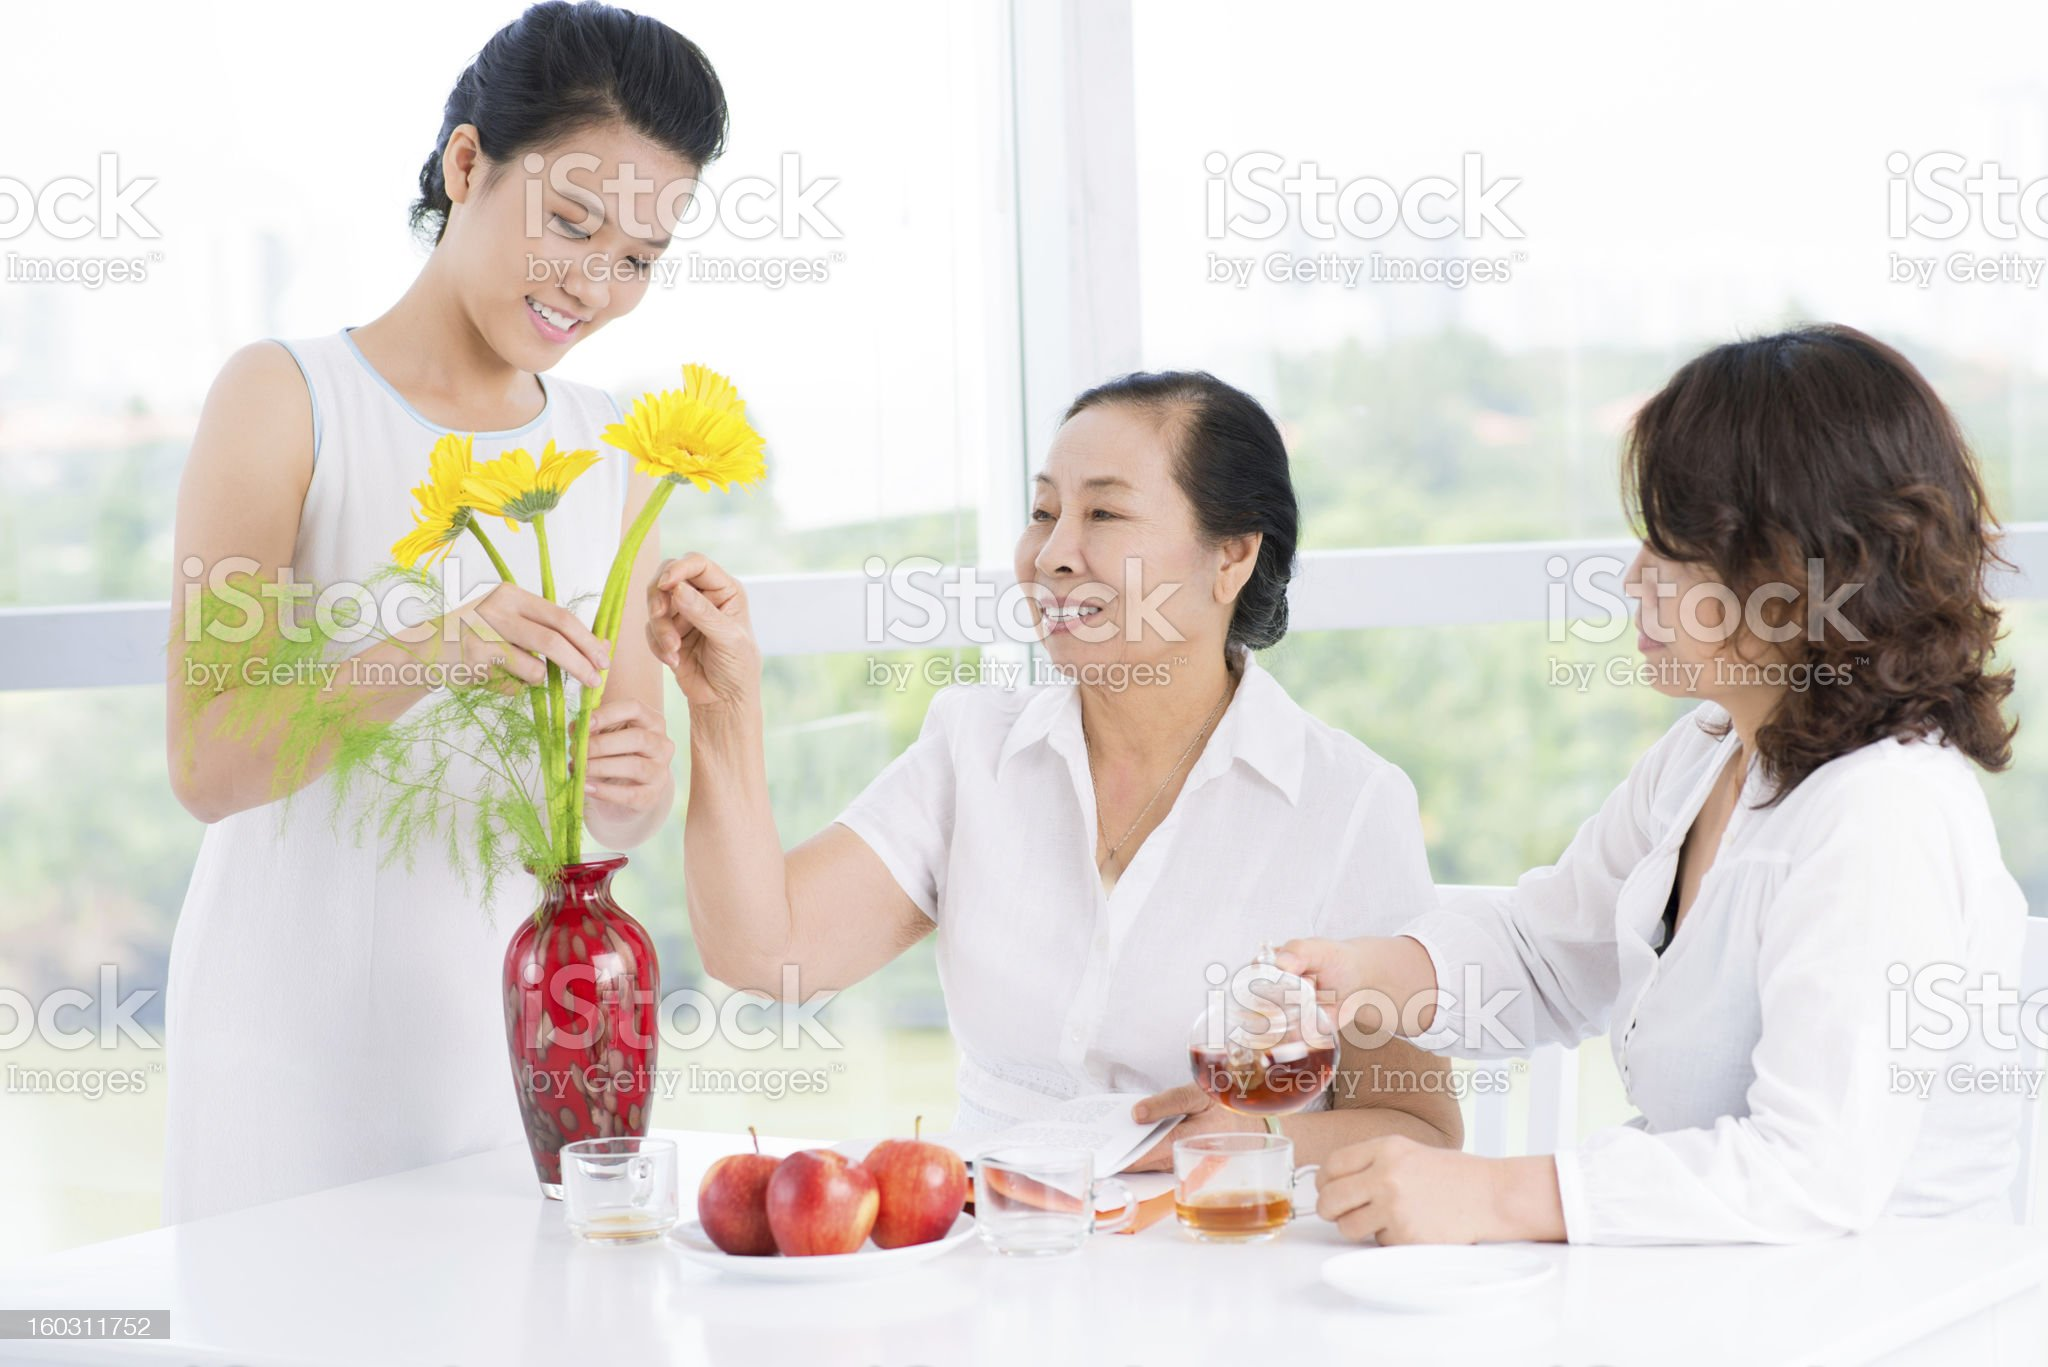 Three women in the room royalty-free stock photo